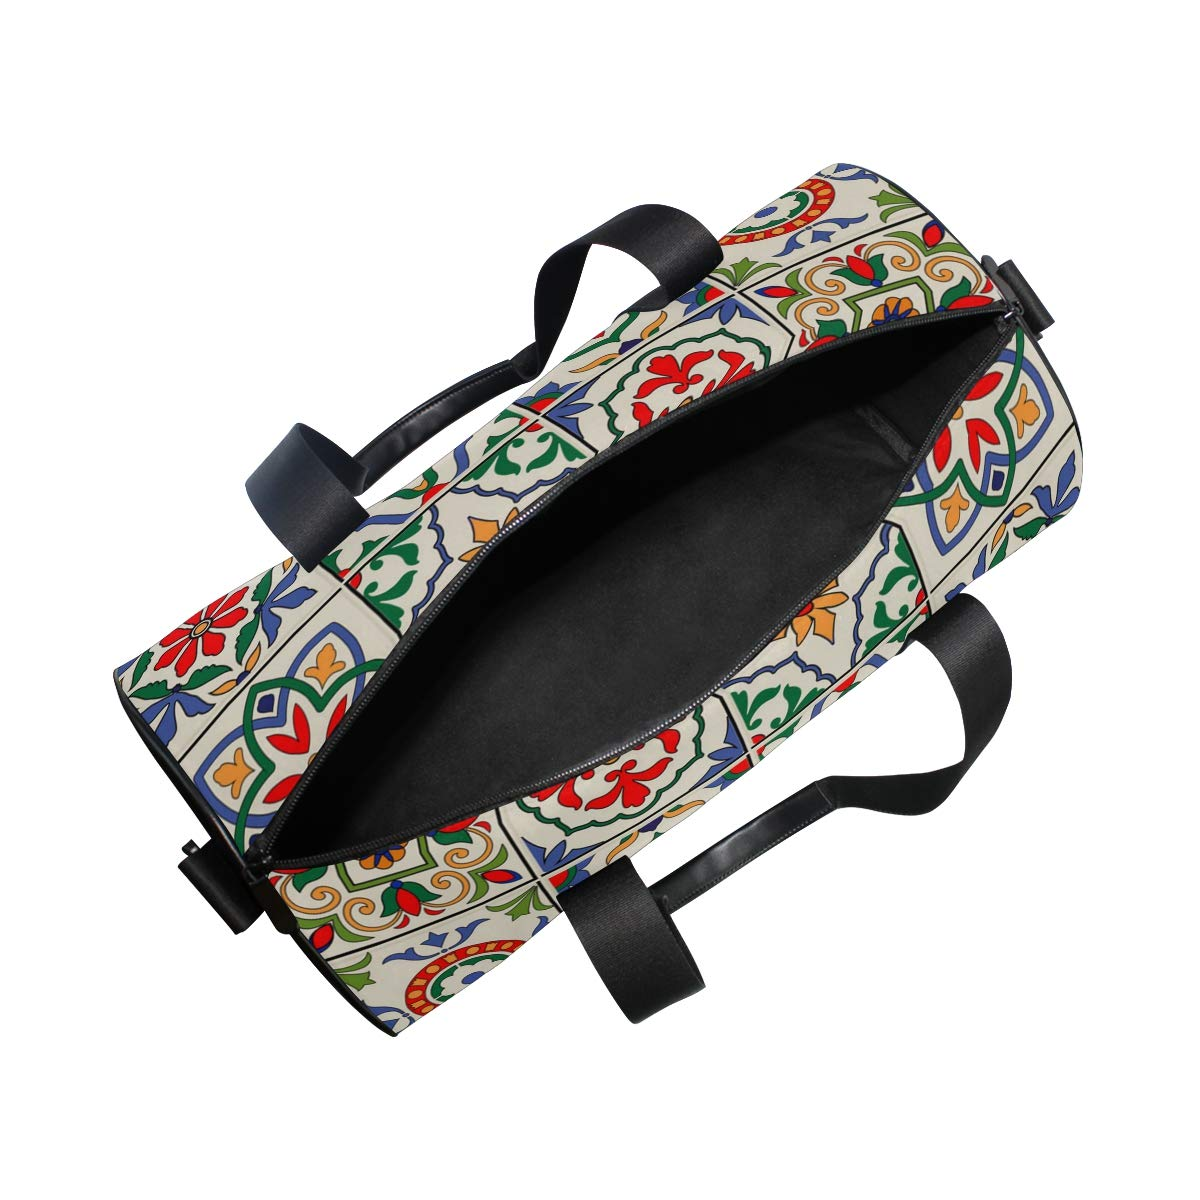 Psychedelic Excellent Ceramic PictureWaterproof Non-Slip Wearable Crossbody Bag fitness bag Shoulder Bag